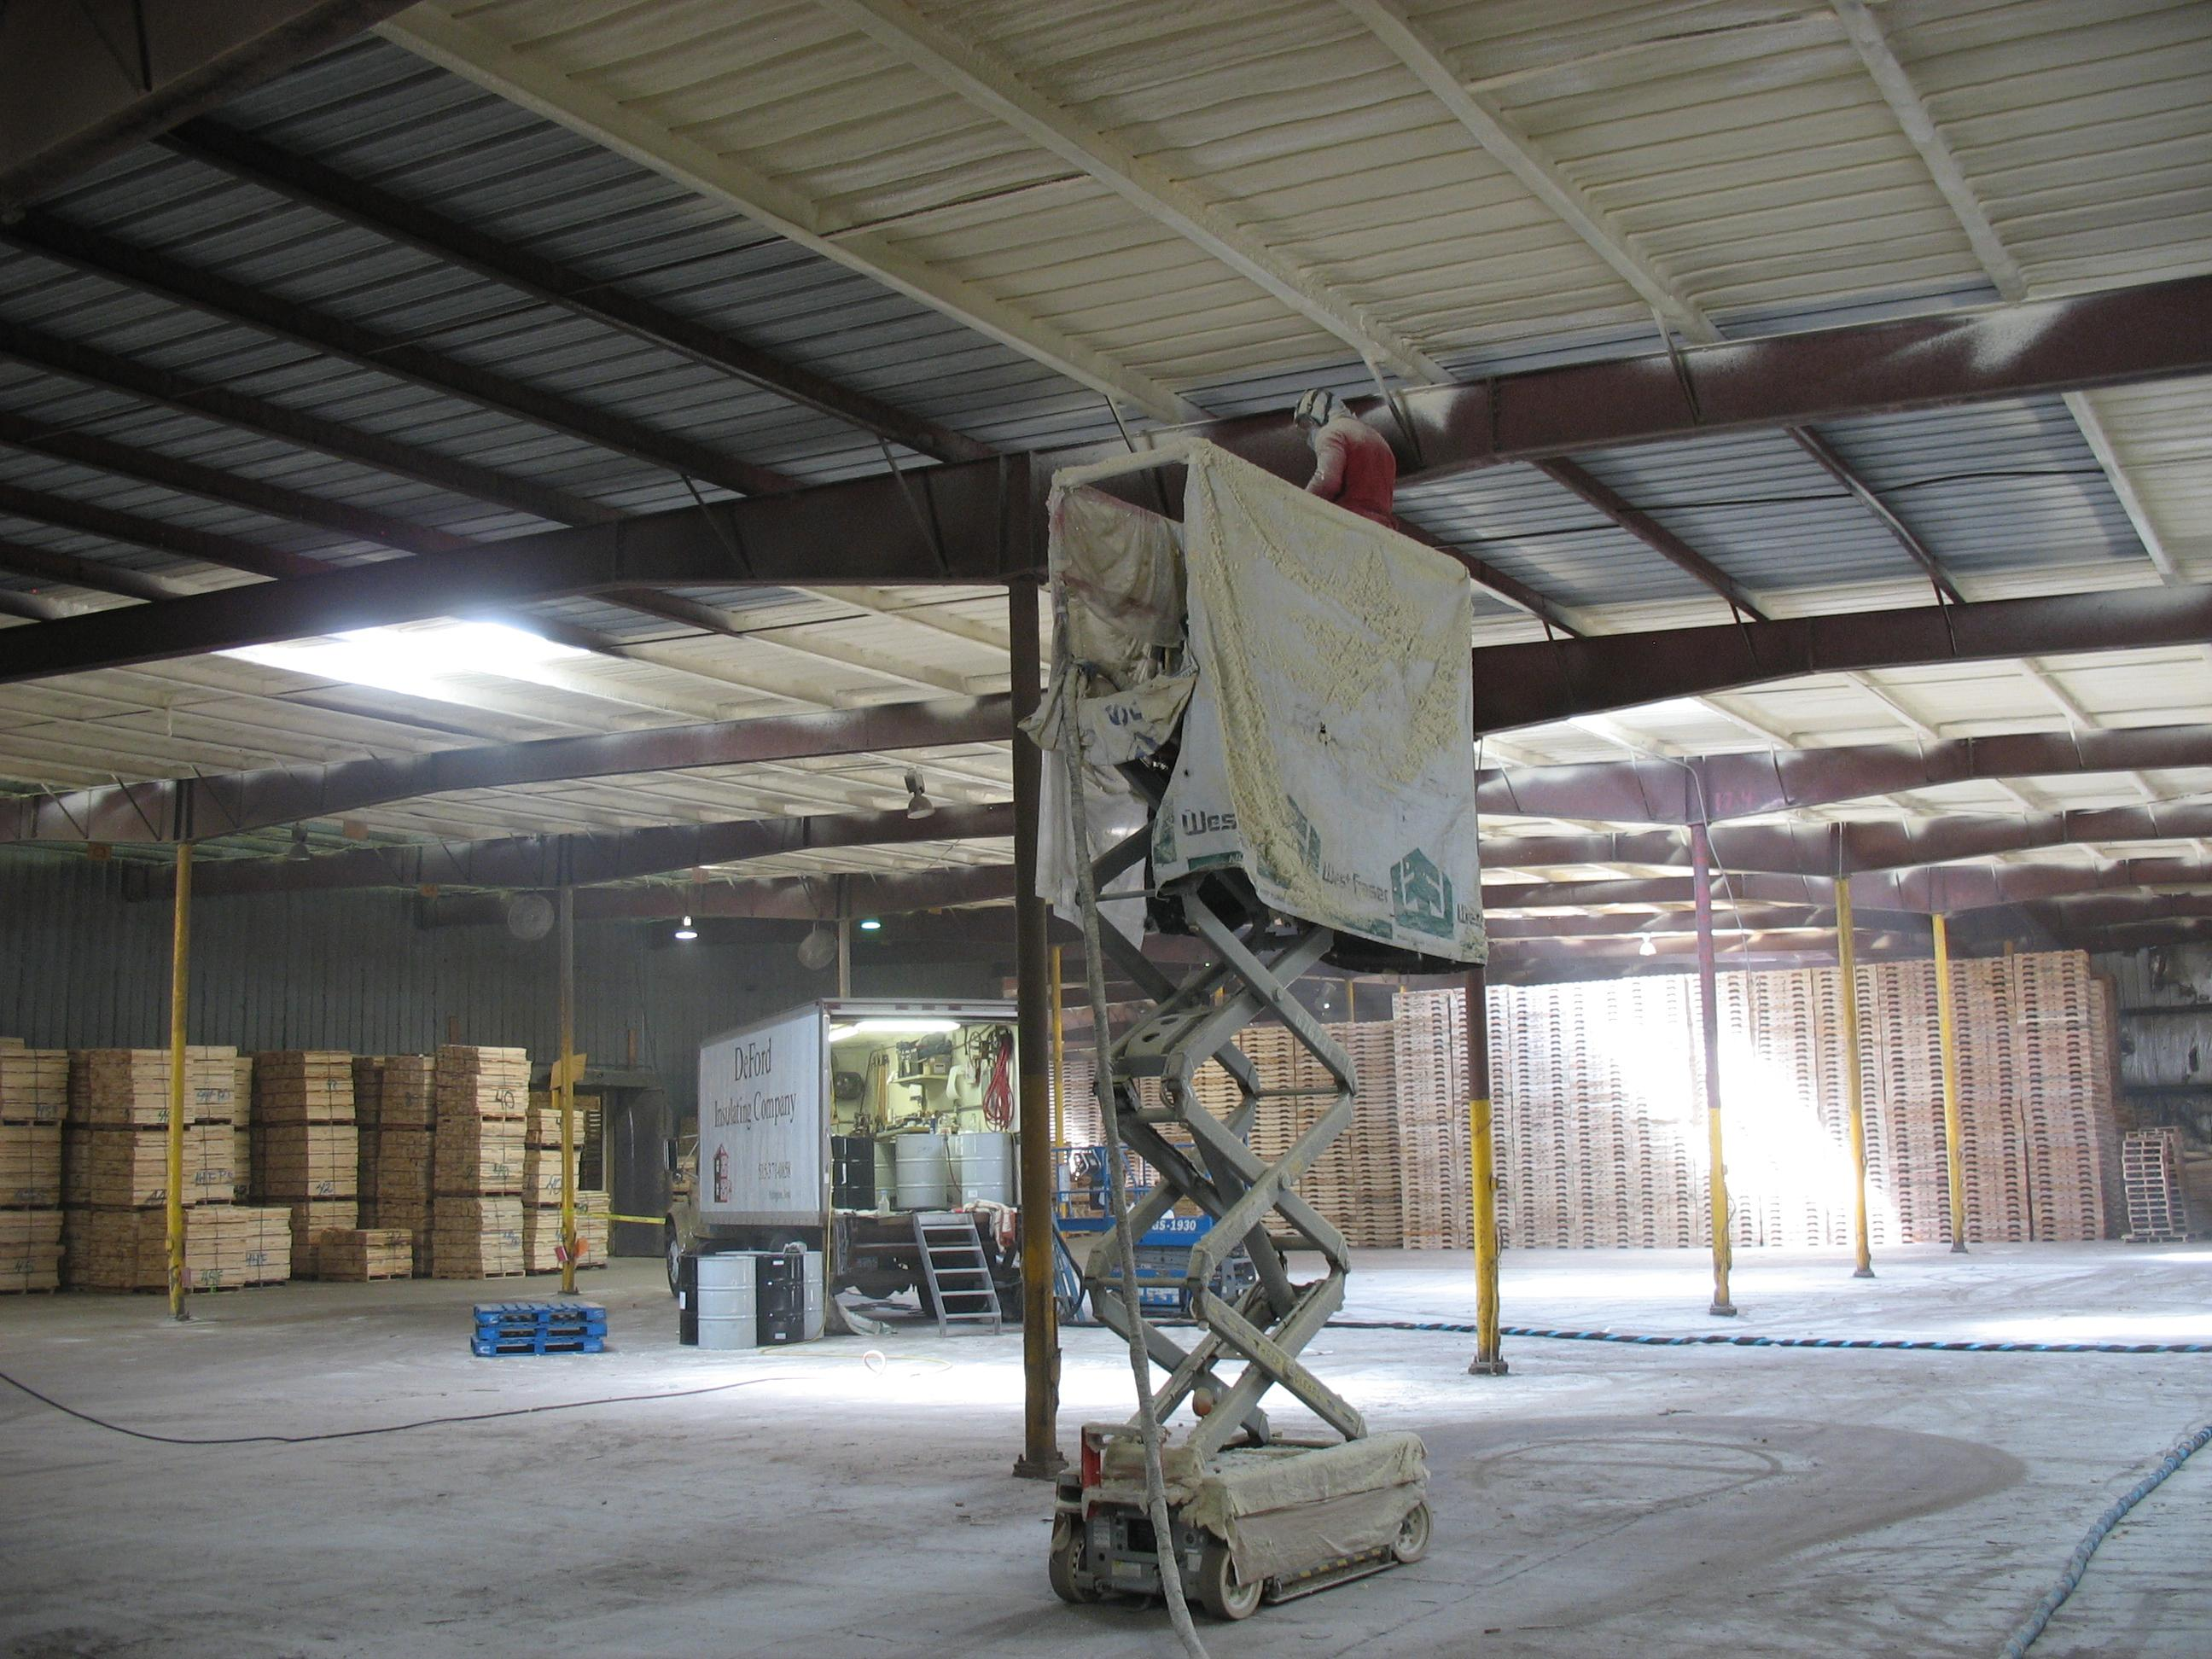 Spray Foam application for cold storage roof to prevent condensation on roof steel.